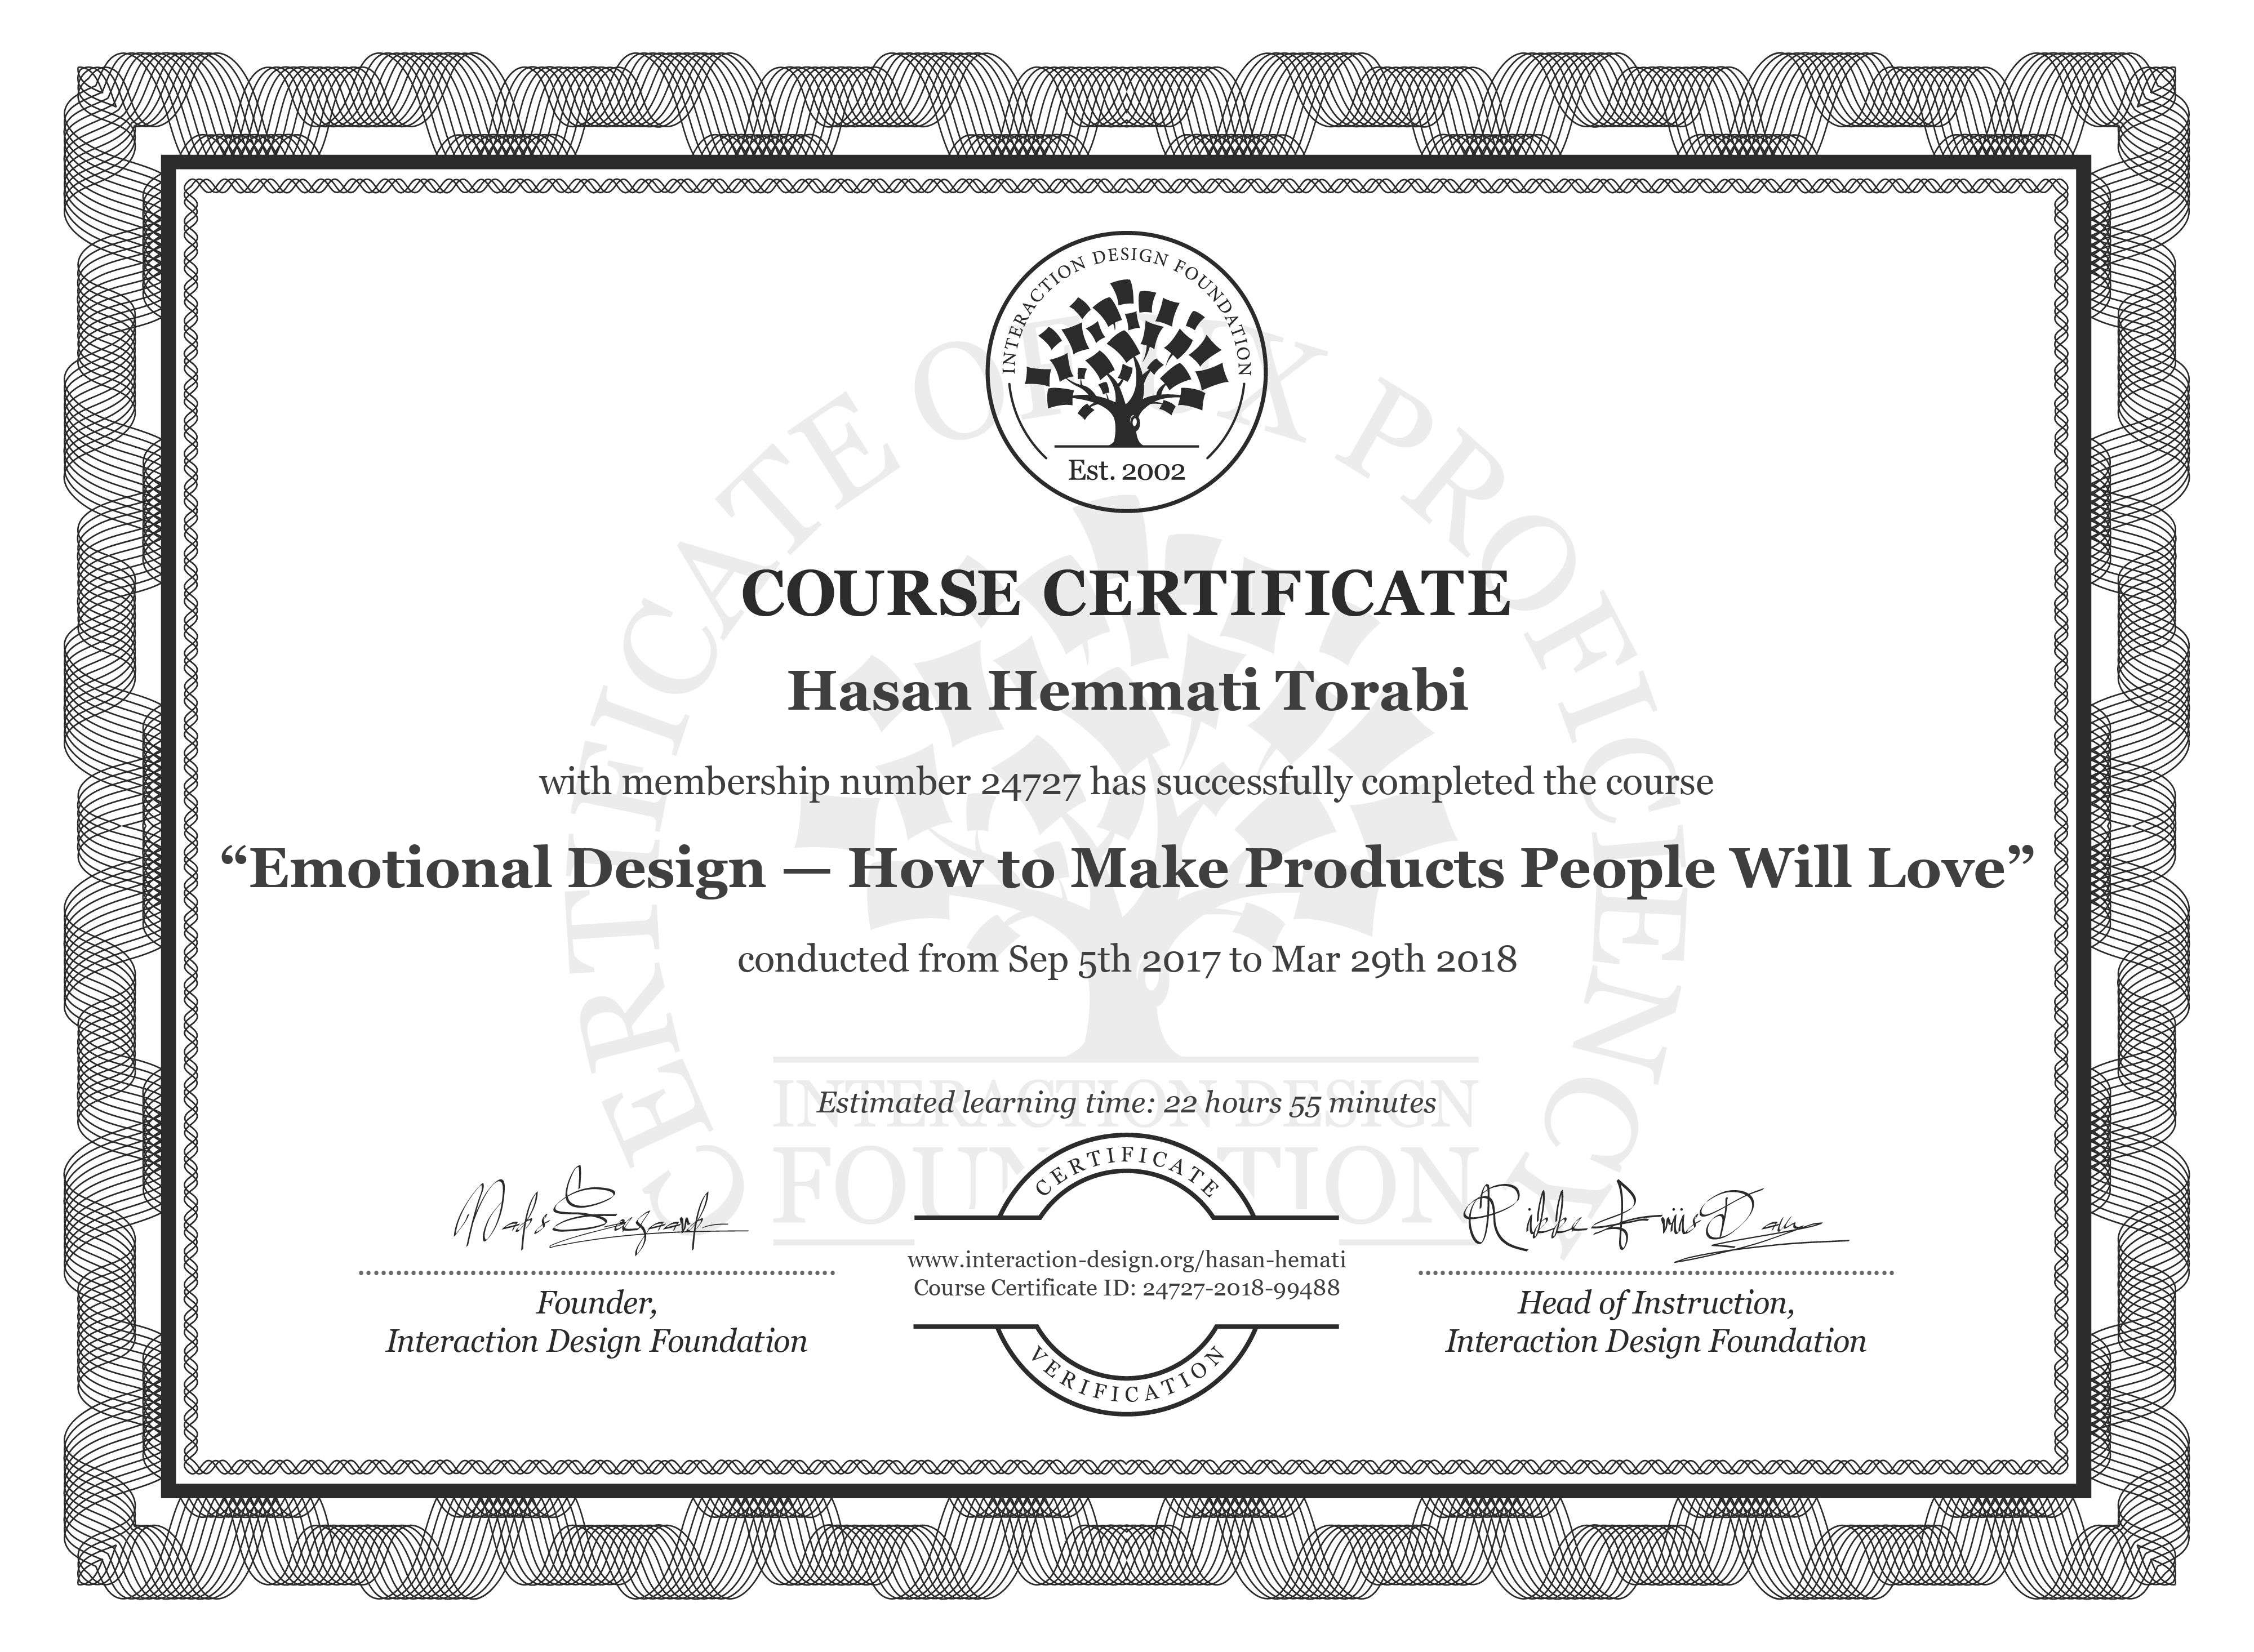 Hasan Hemmati Torabi: Course Certificate - Emotional Design — How to Make Products People Will Love